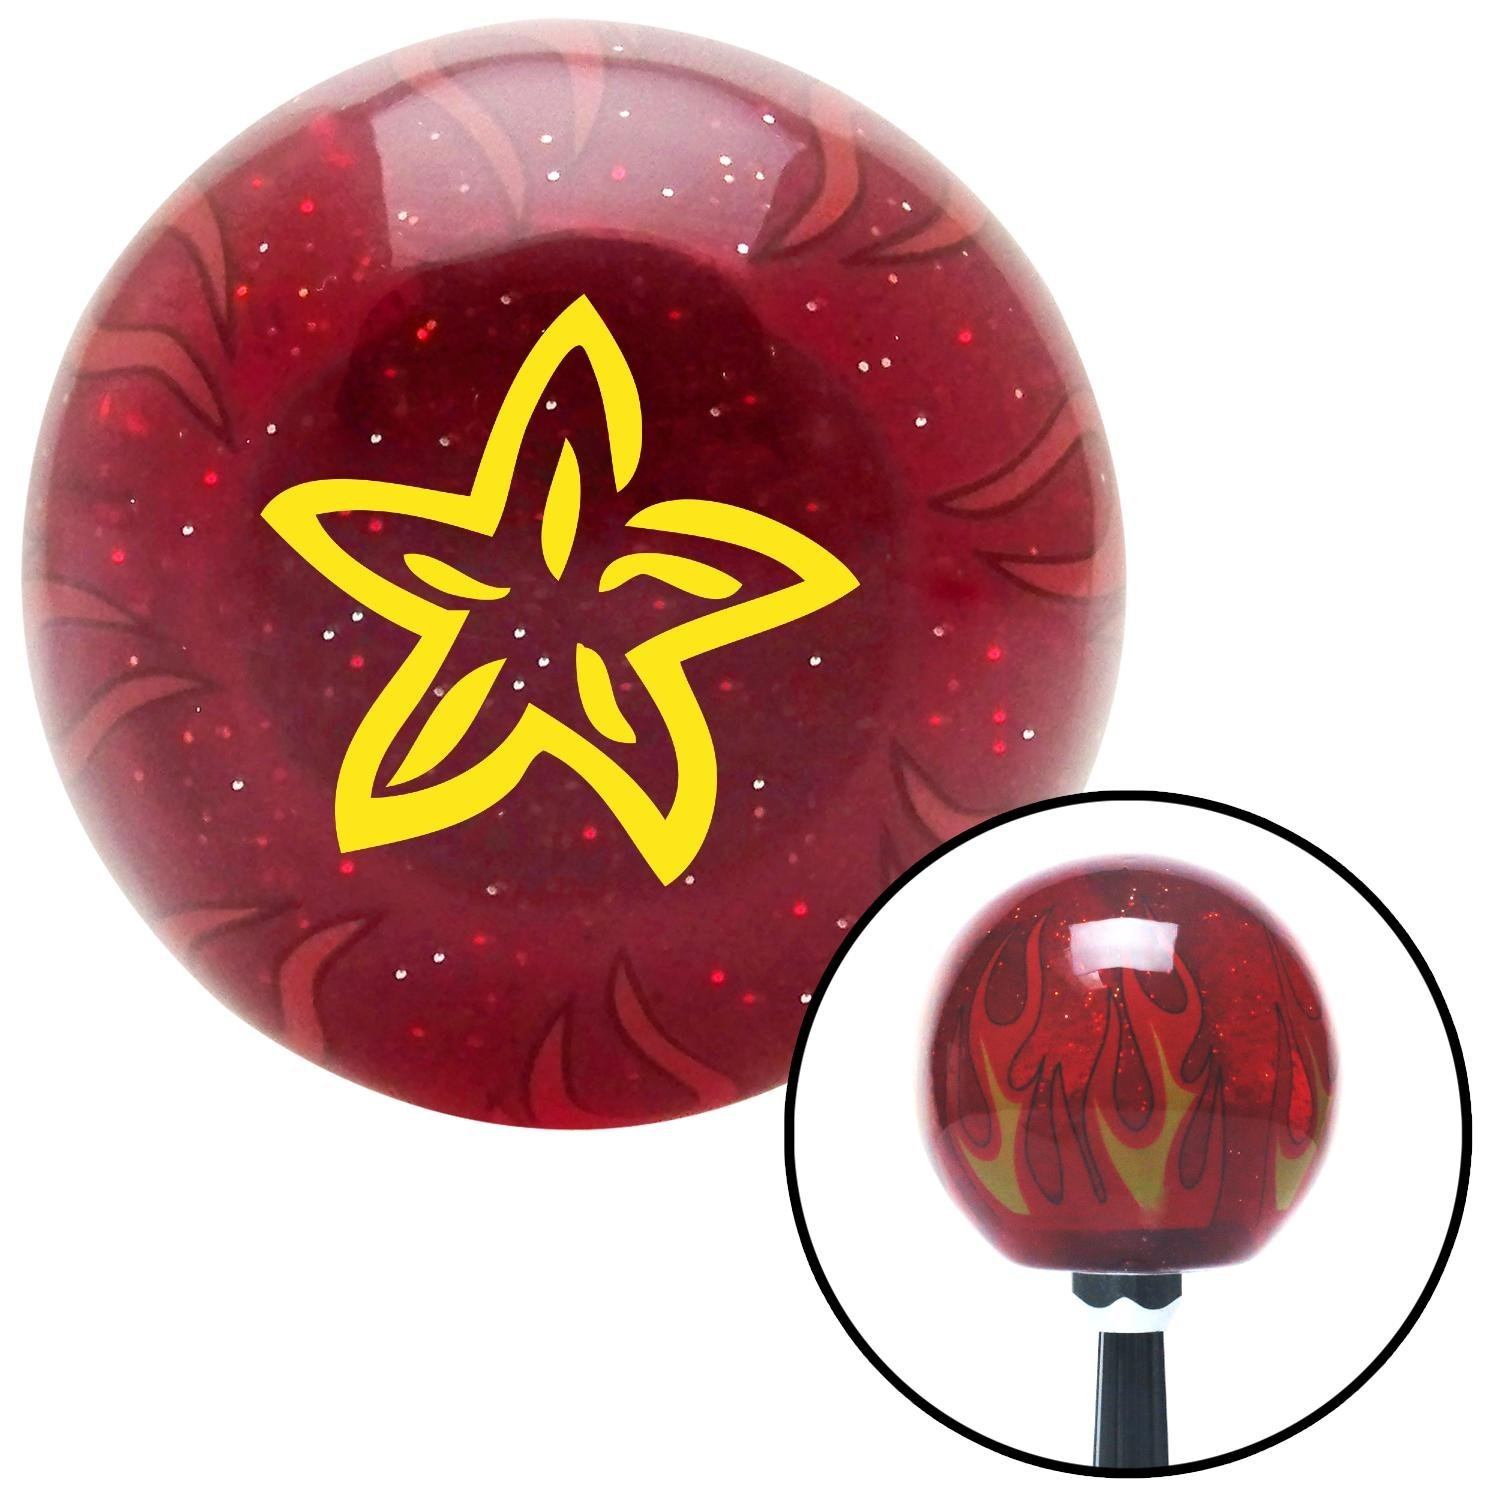 Yellow Starfish American Shifter 240855 Red Flame Metal Flake Shift Knob with M16 x 1.5 Insert